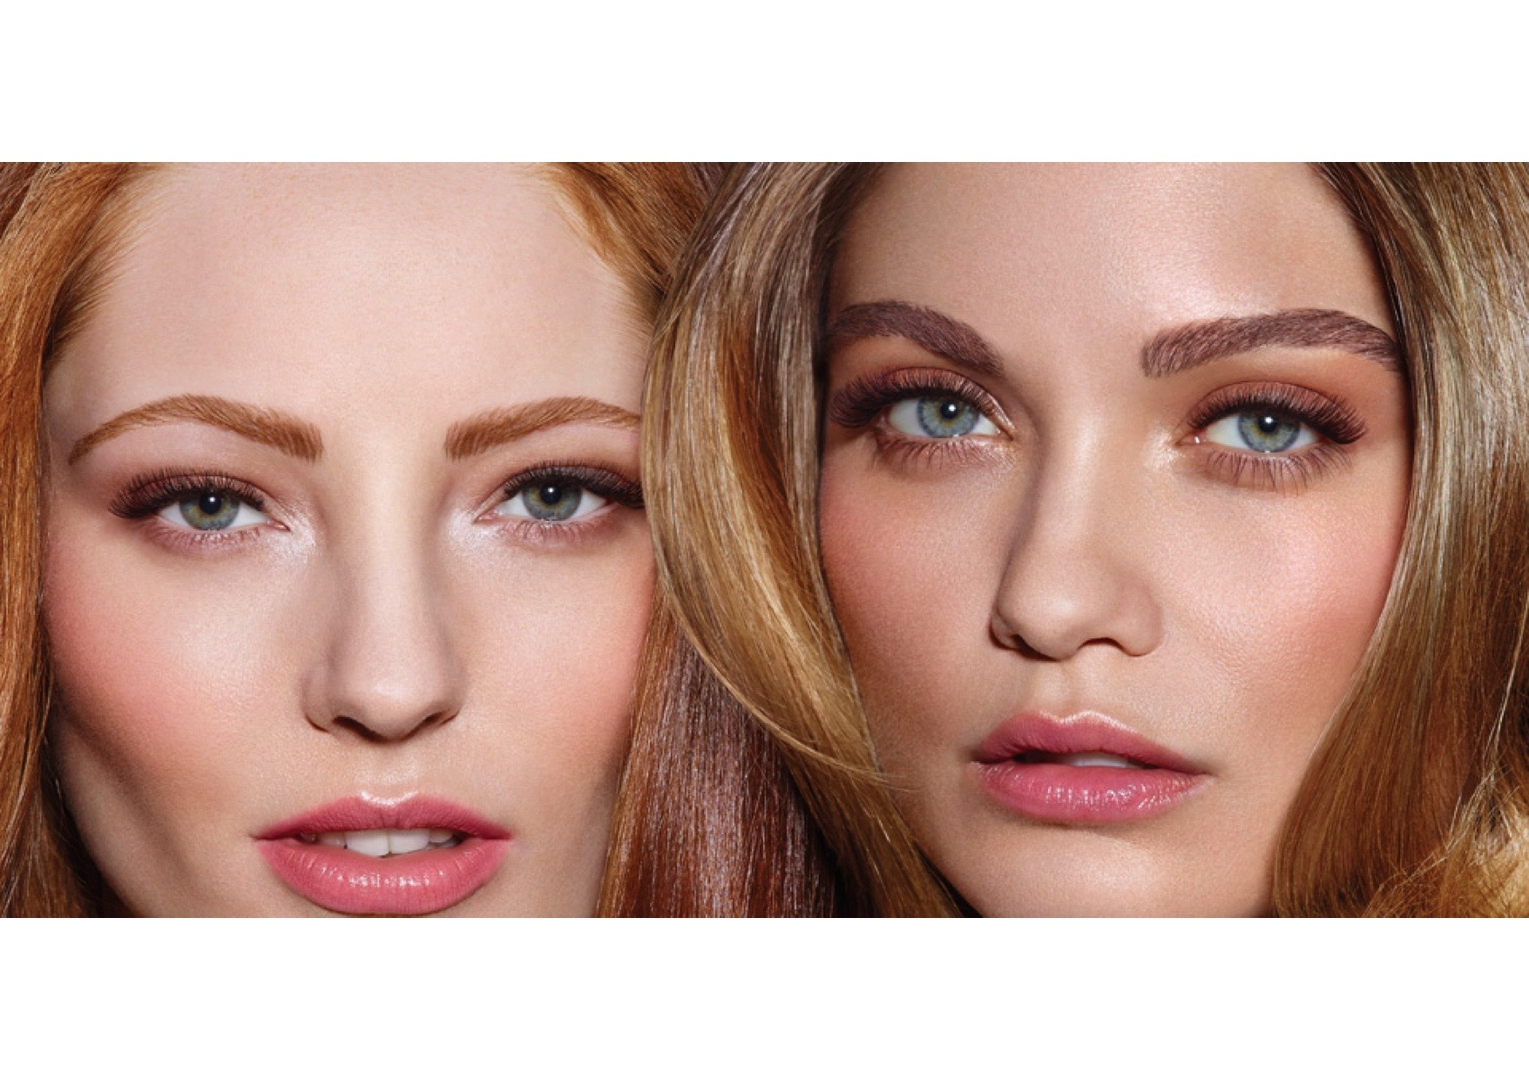 2cabdd0418f Nouveau lashes - Volume lashes - Lashes extensions - HD Brows - High  Definition - The Beauty Studio IOM - Isle of Man